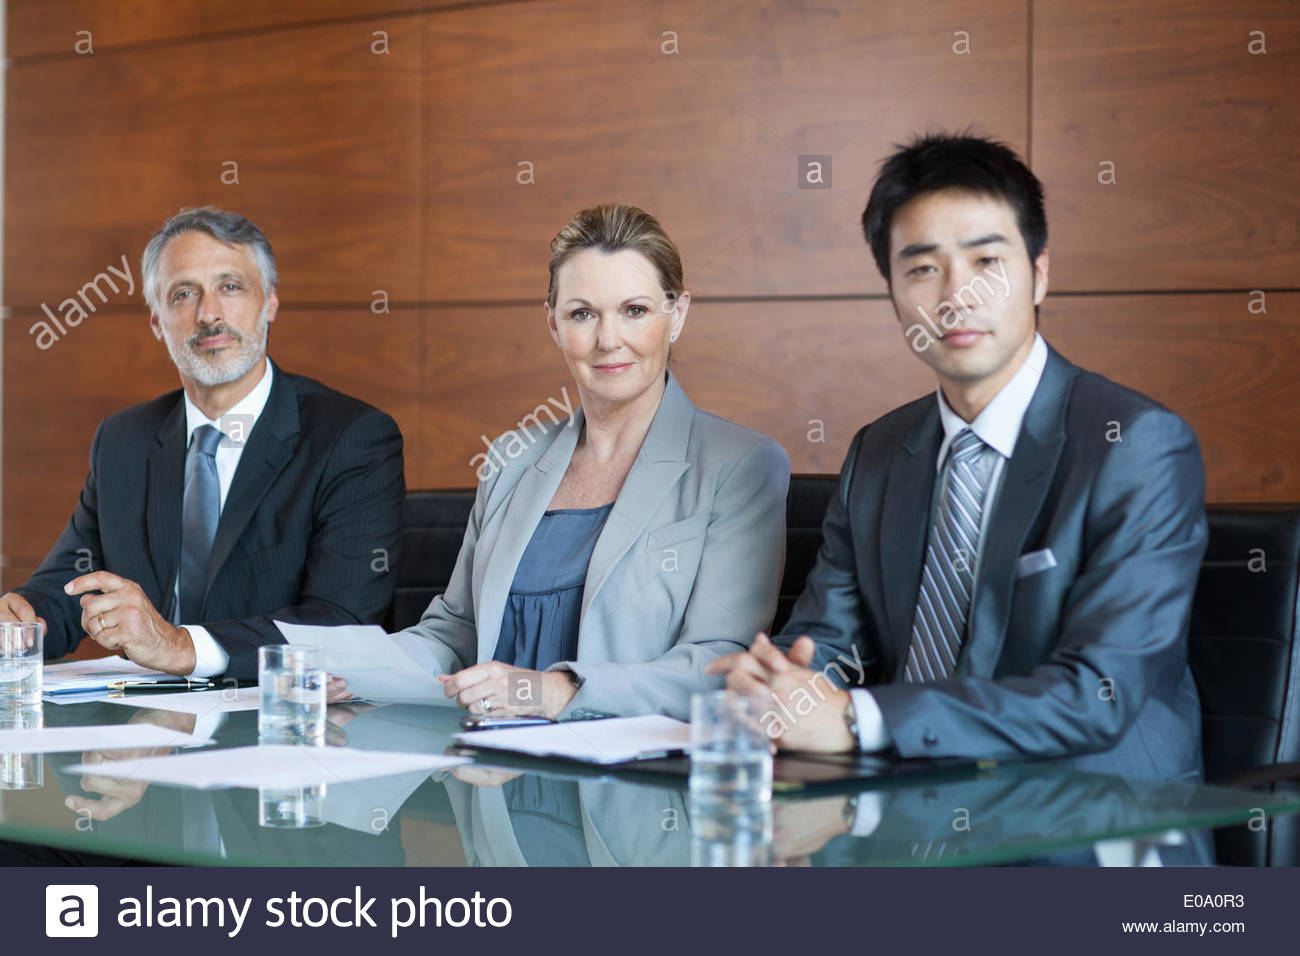 Businesswoman showing paperwork to businessmen in meeting - Stock Image